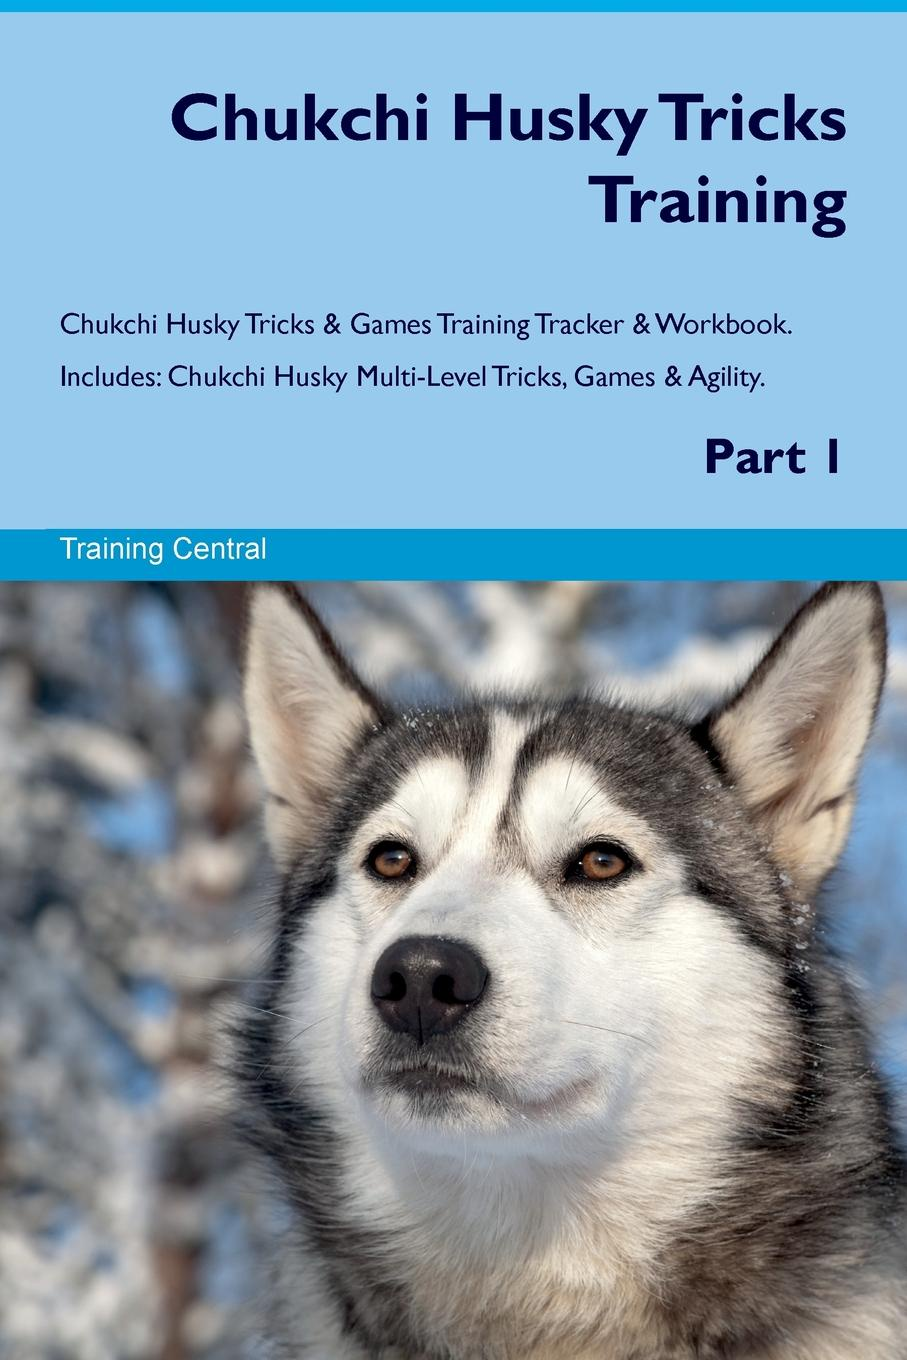 Training Central Chukchi Husky Tricks Training Chukchi Husky Tricks & Games Training Tracker & Workbook. Includes. Chukchi Husky Multi-Level Tricks, Games & Agility. Part 1 training central siberian husky tricks training siberian husky tricks games training tracker workbook includes siberian husky multi level tricks games agility part 2